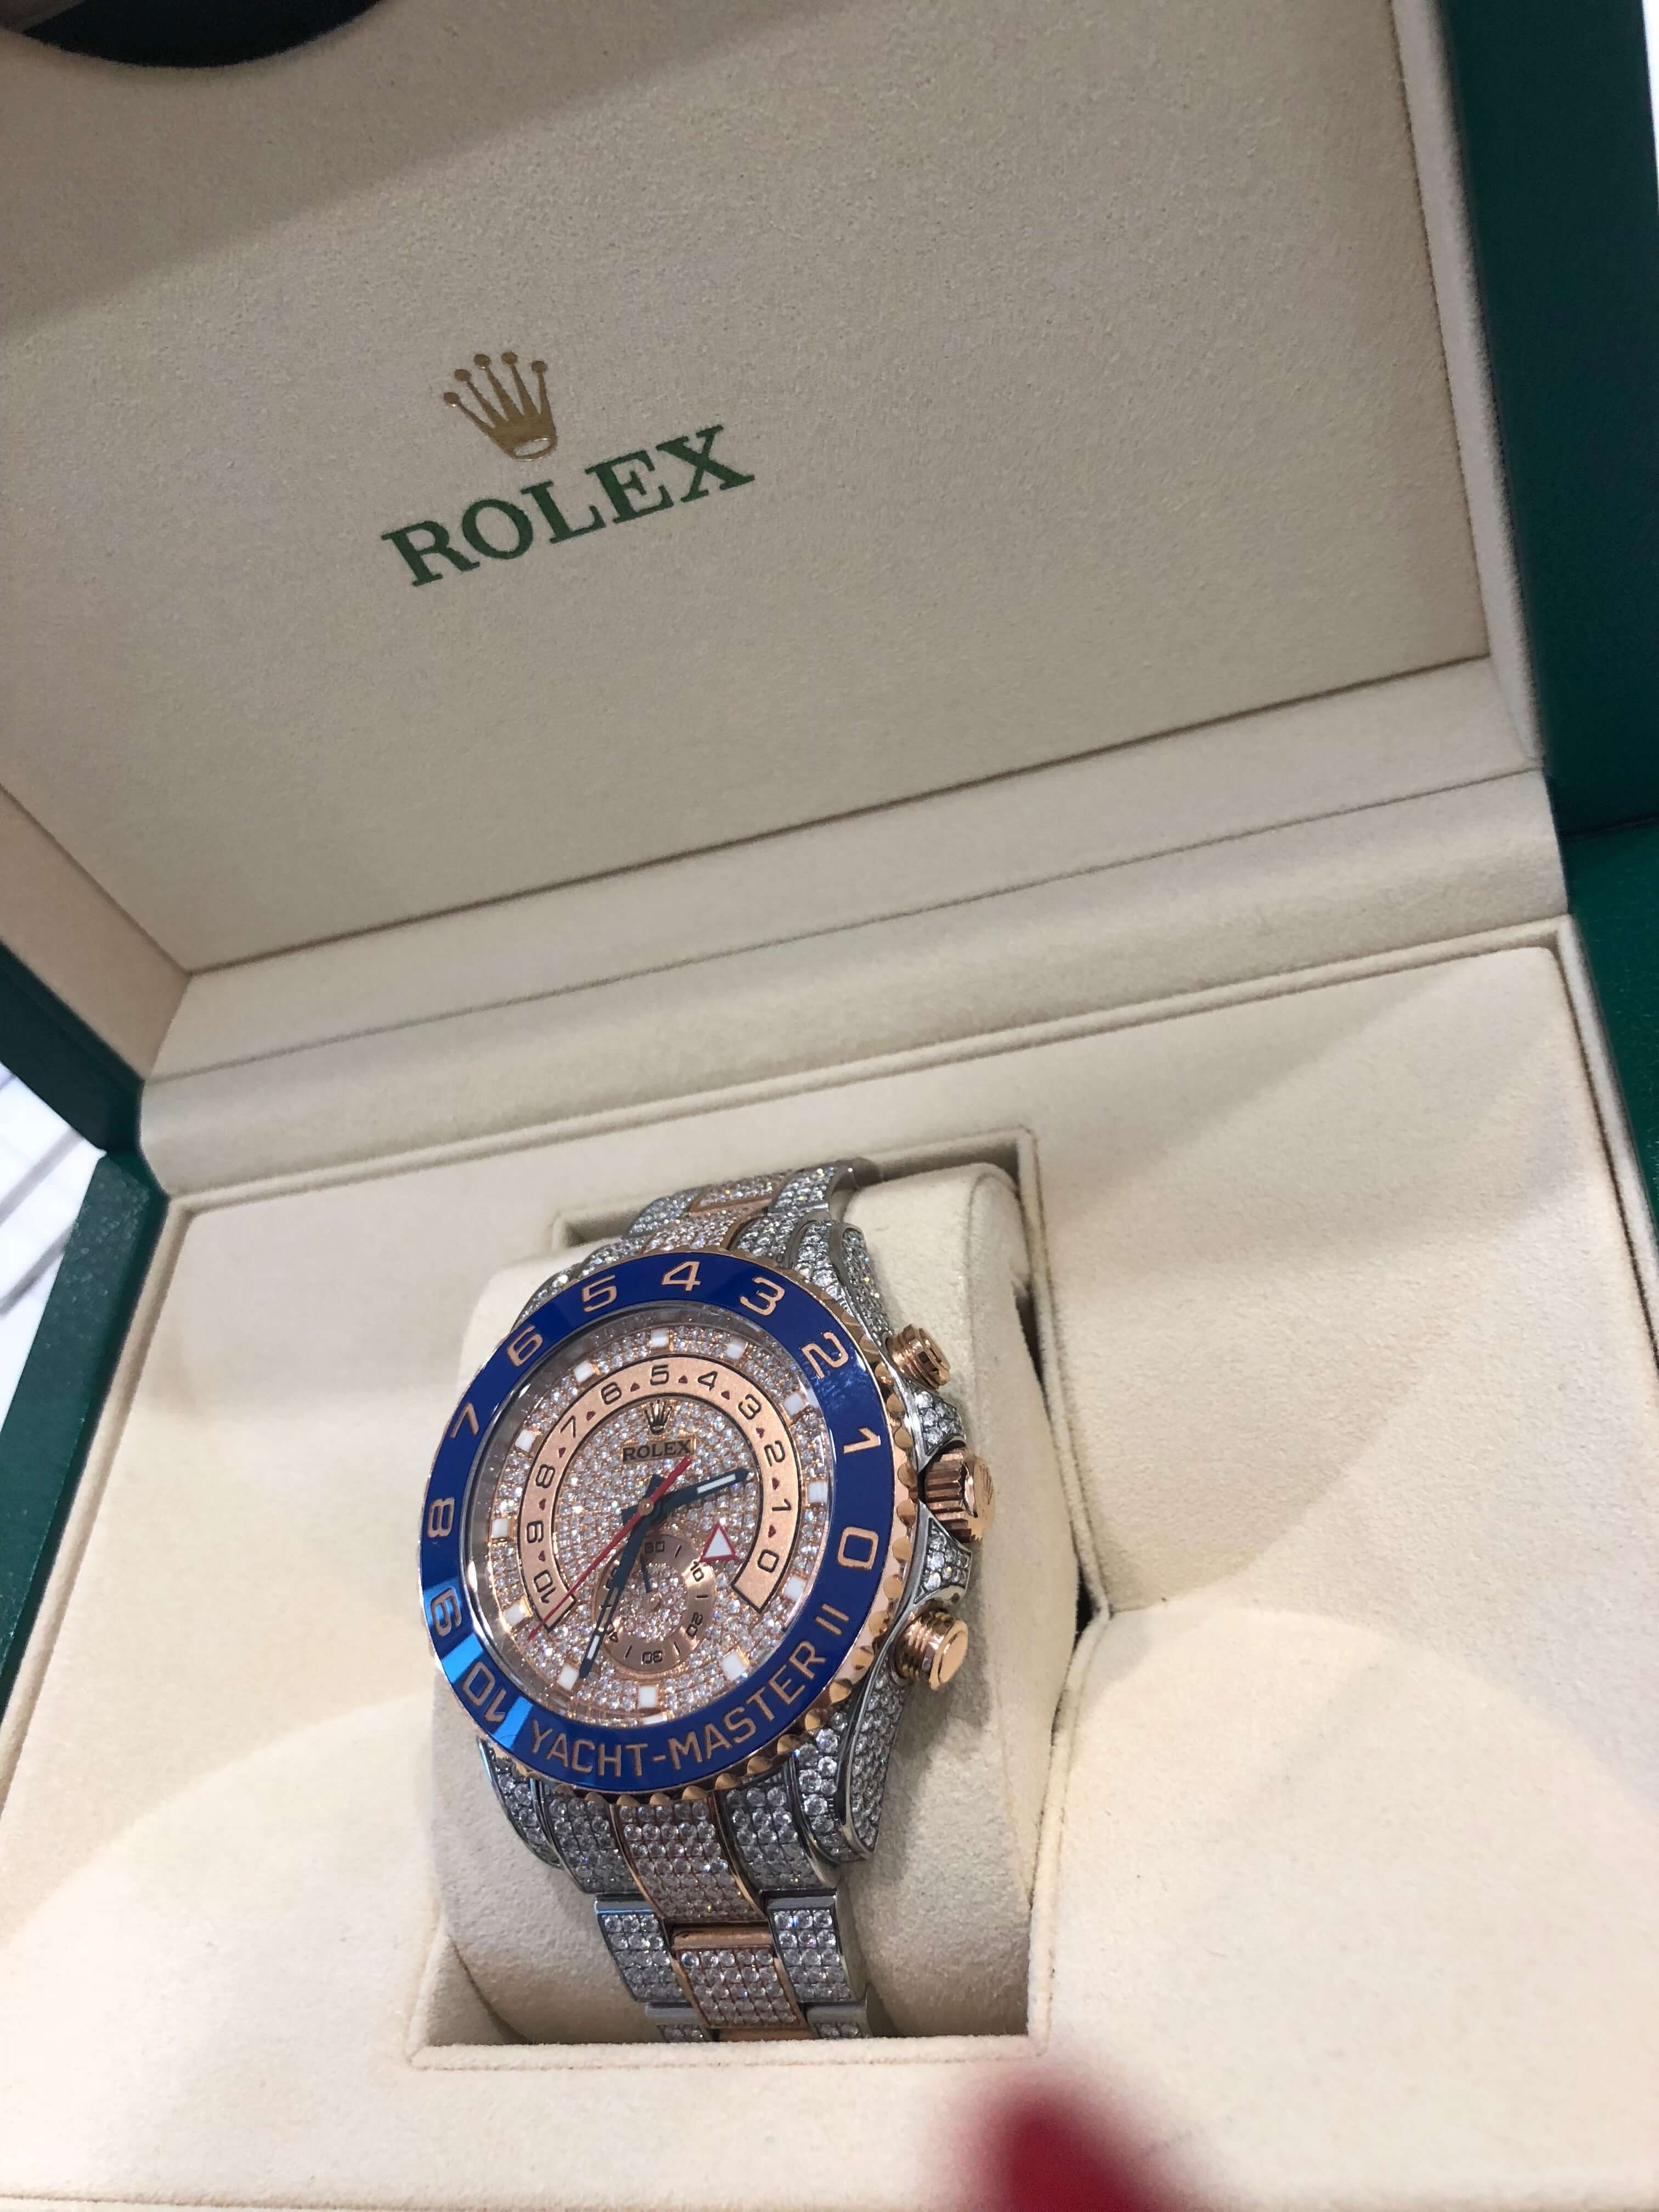 Rolex Yachtmaster 2-tone Diamond set watch